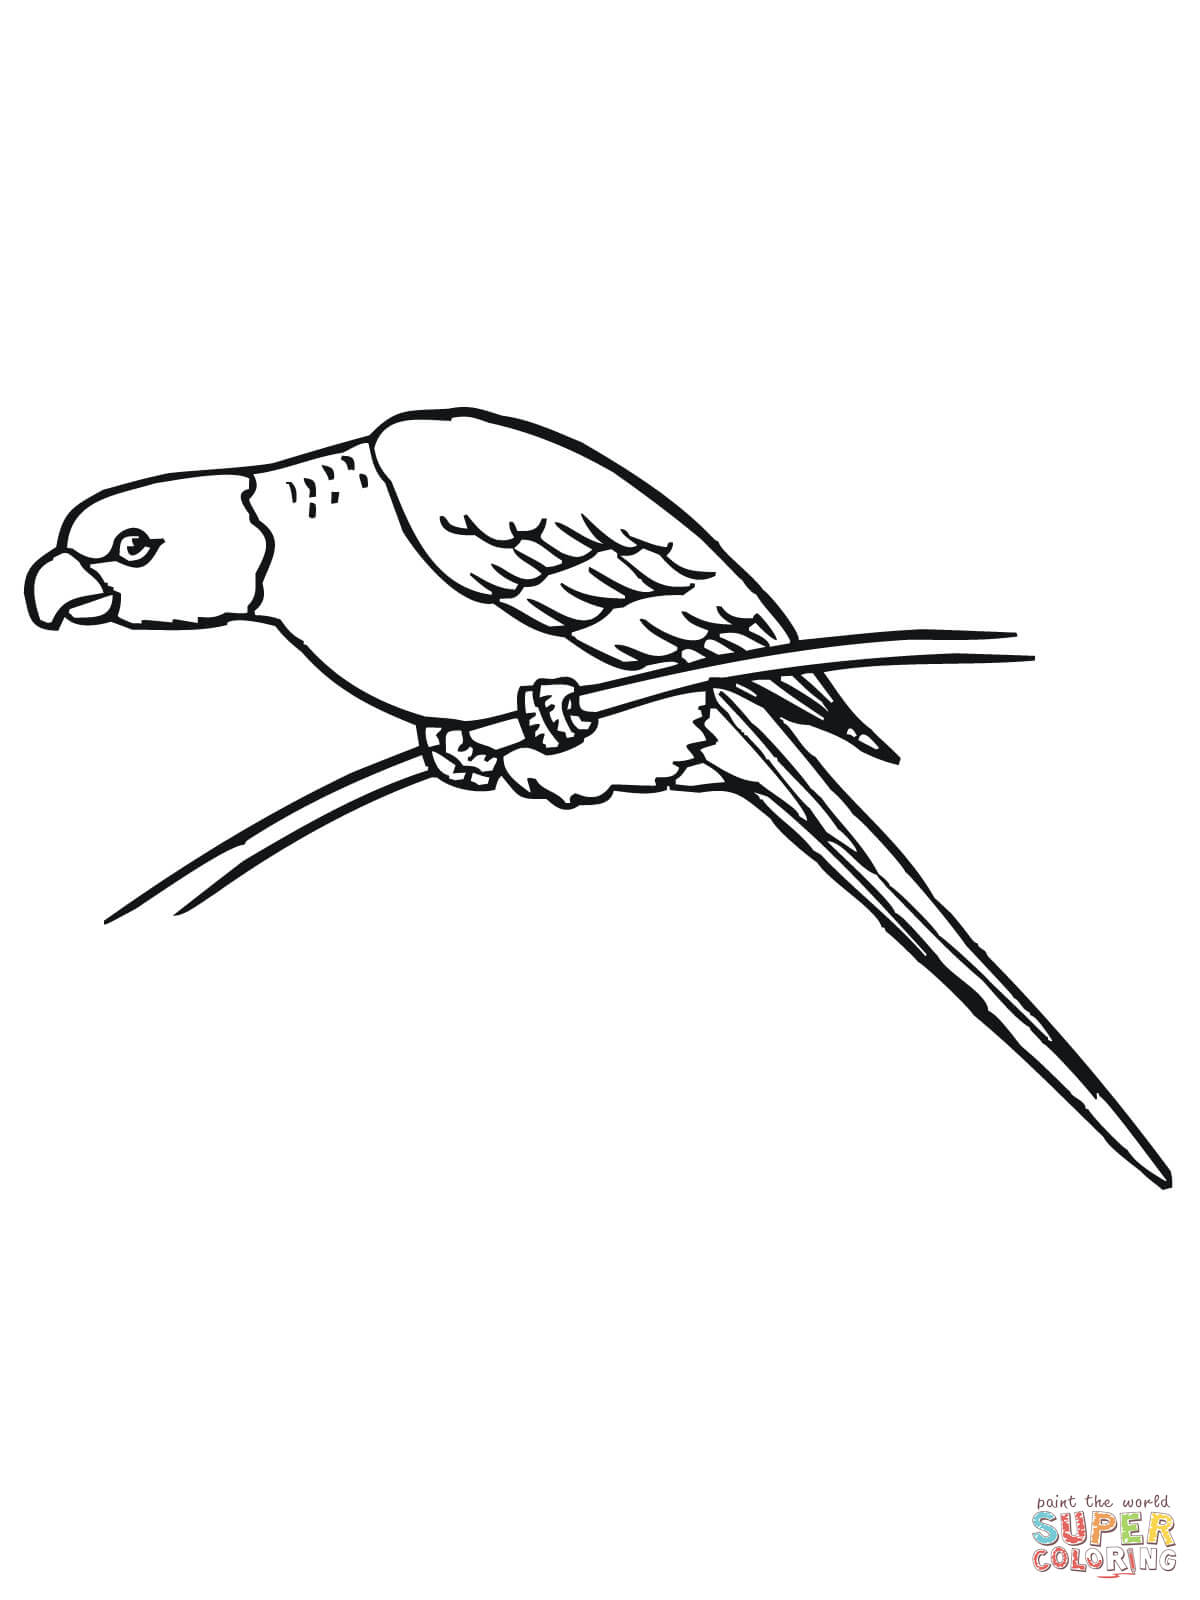 Perched Parakeet Coloring Page